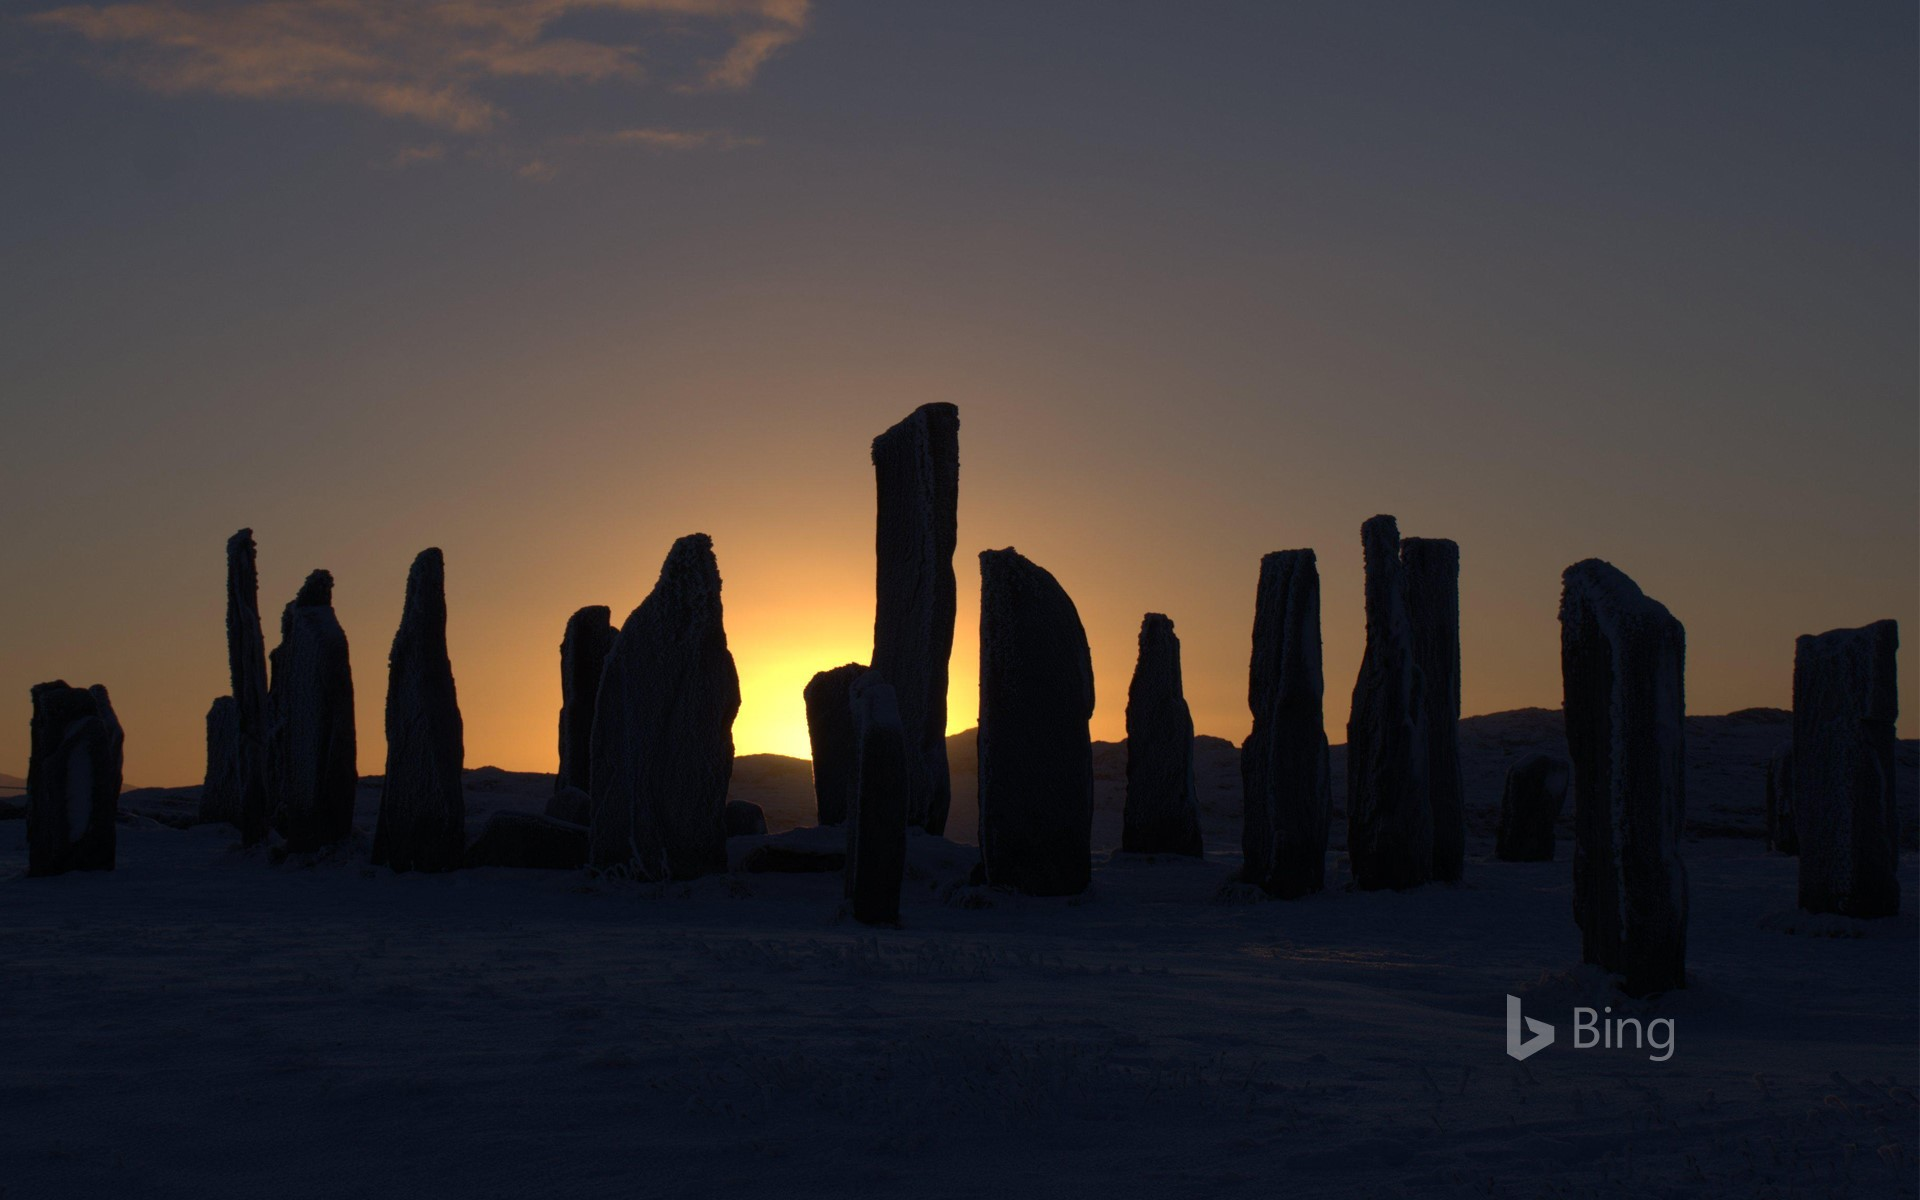 The Callanish Stones, Isle of Lewis, at sunset